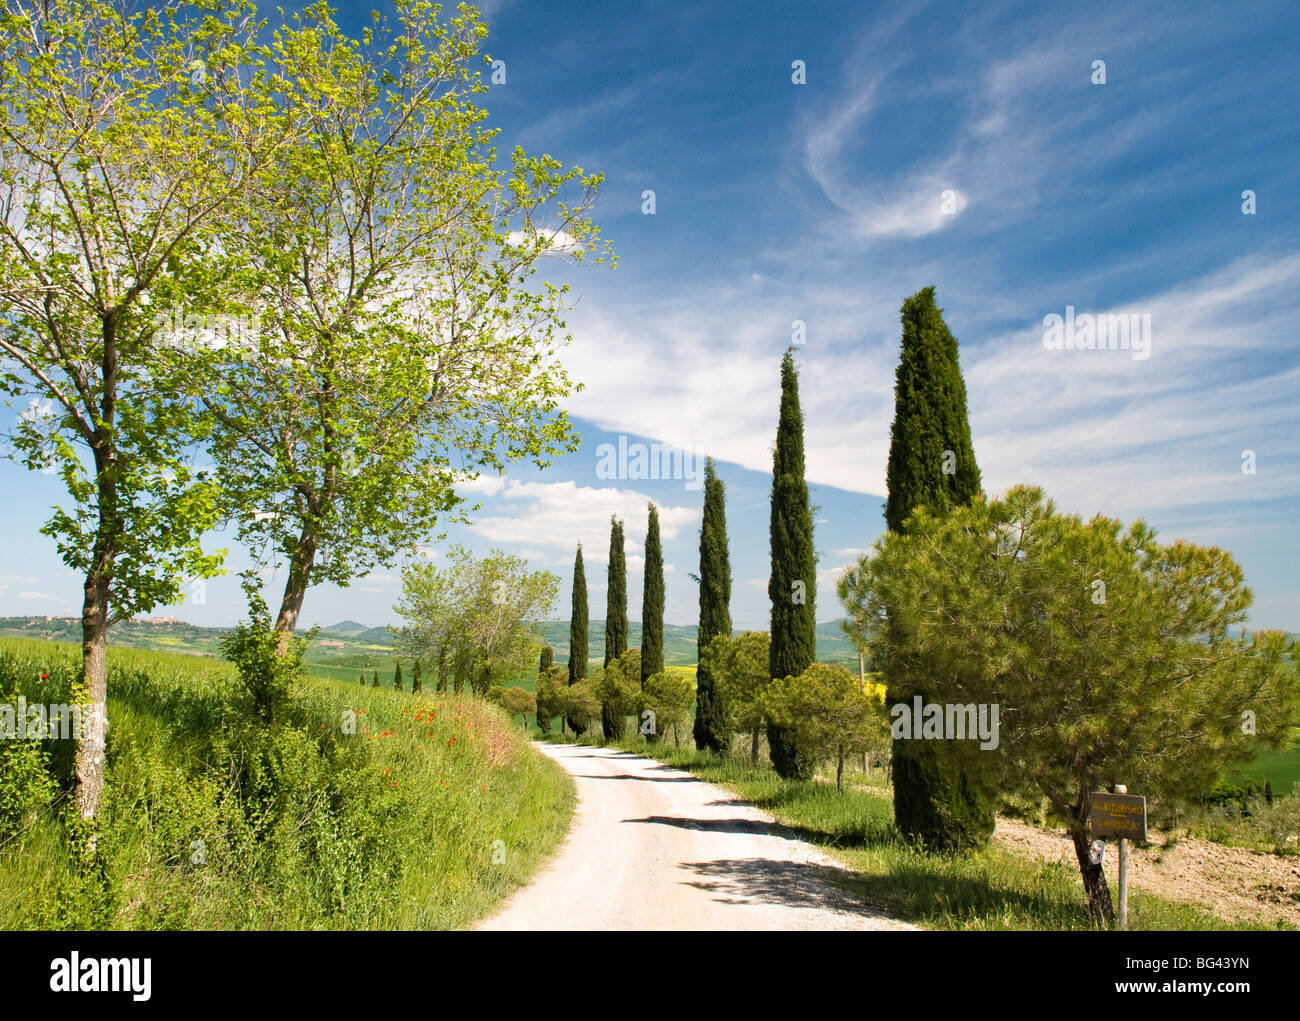 Traditional Tuscan landscape, near San Quirico, Valle de Orcia, Tuscany, Italy - Stock Image